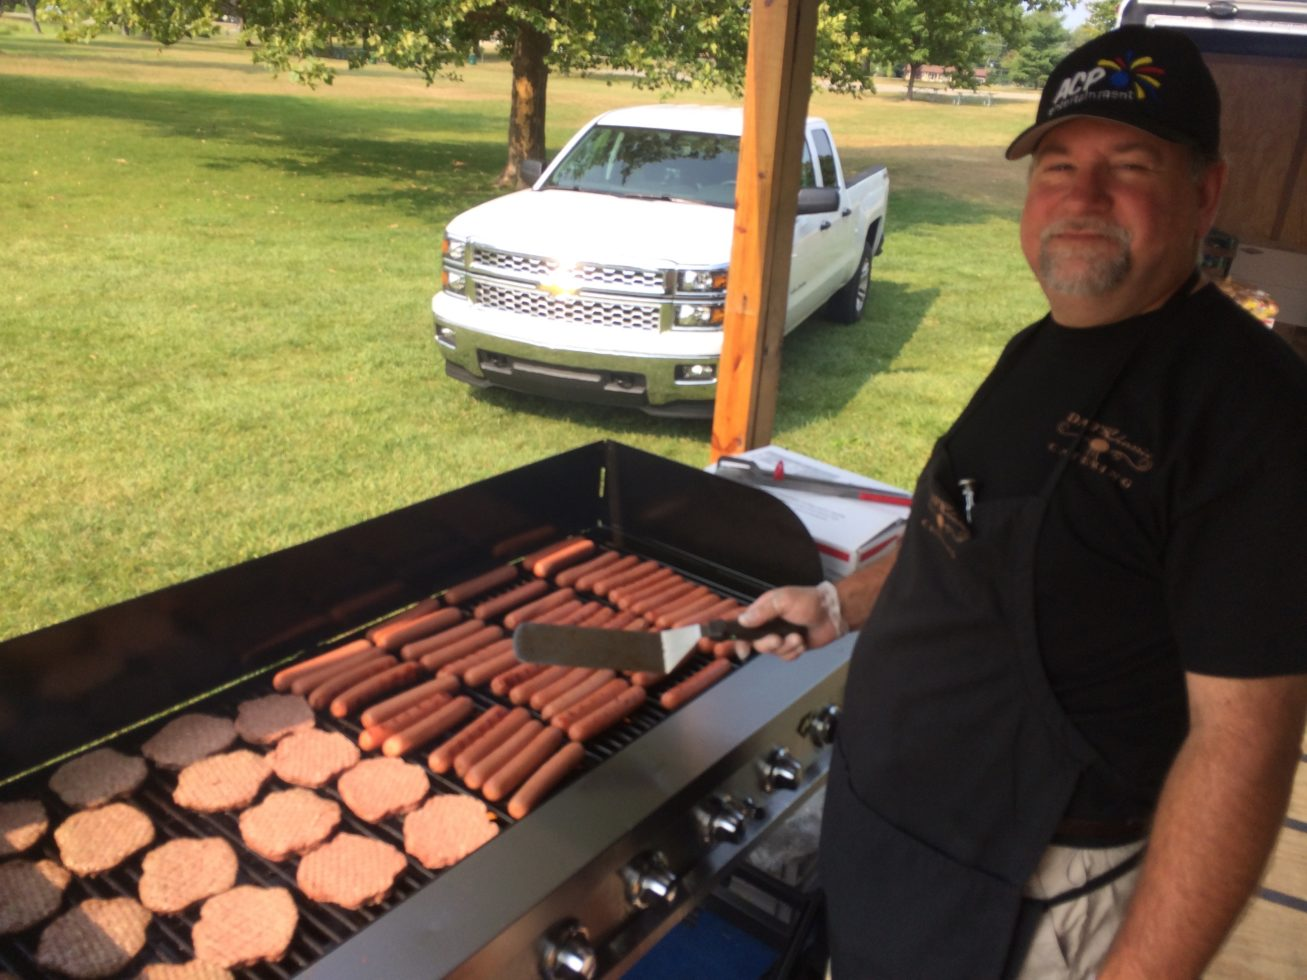 Cooking hamburgers and hot dogs on the grill